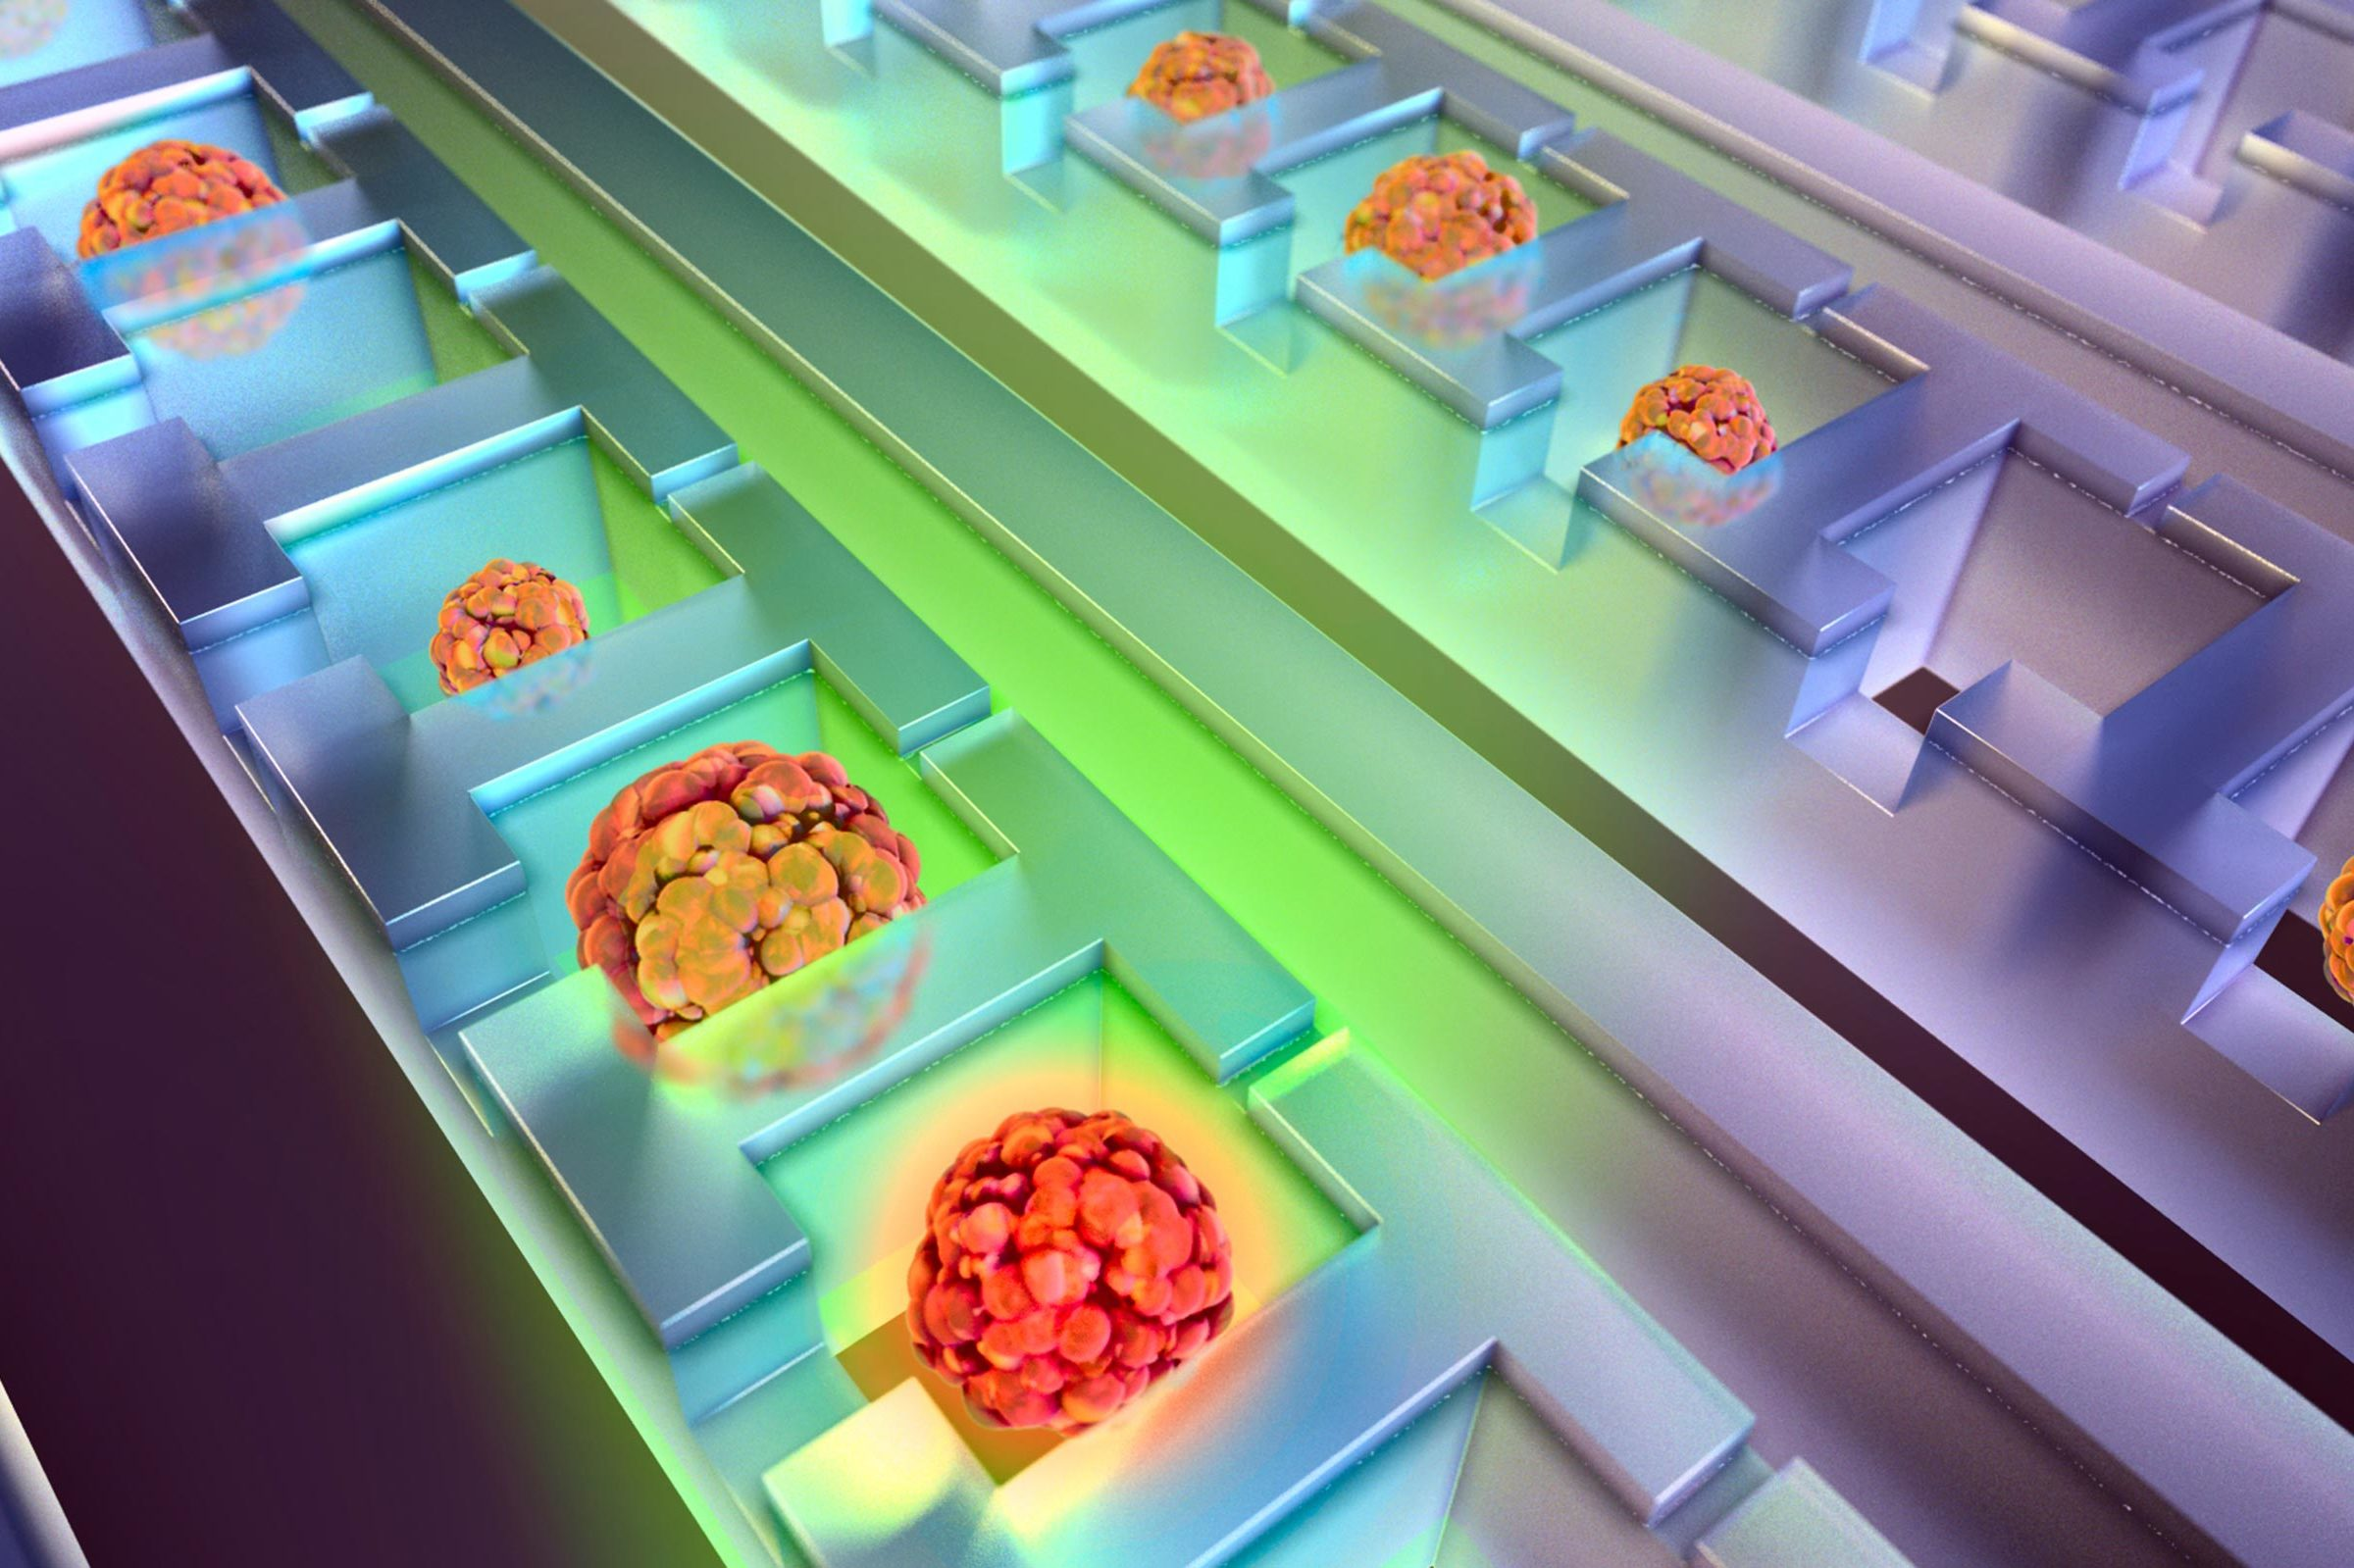 Illustration of cancer cell colonies growing in the chip